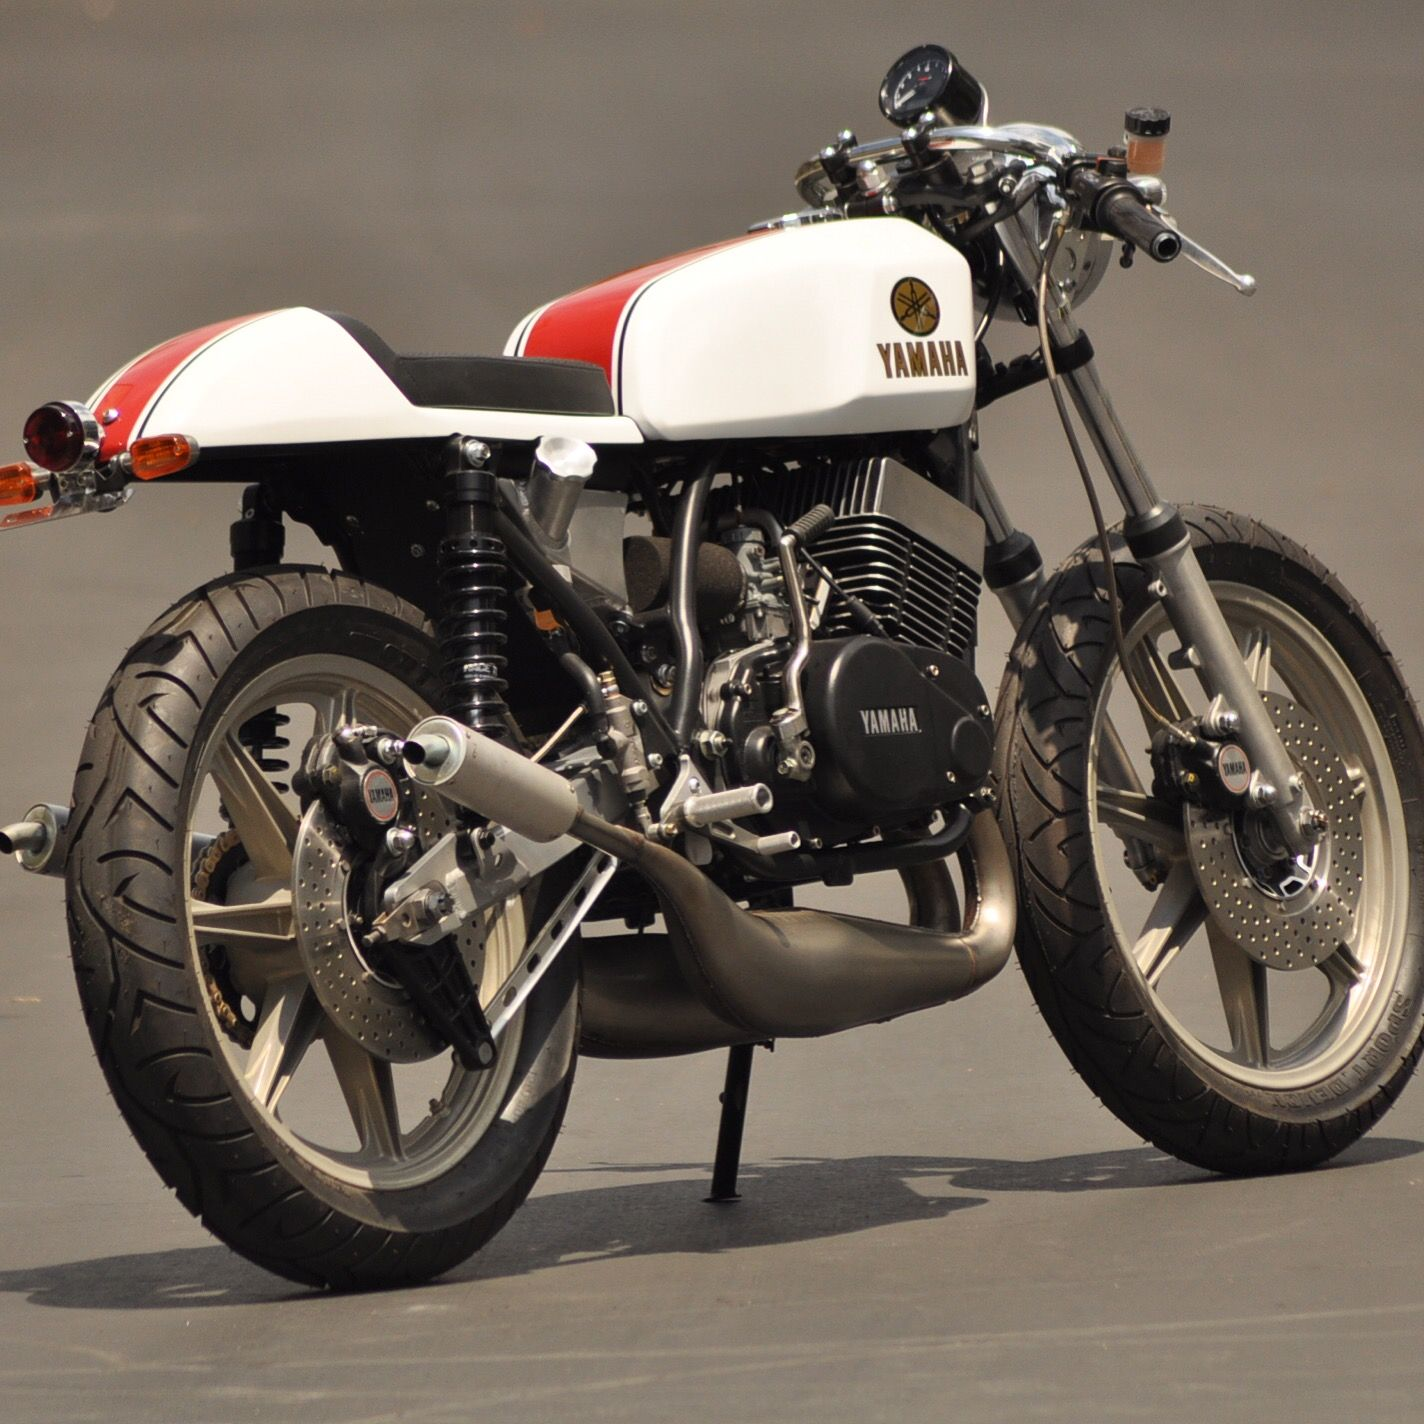 The base bike was a 1980 xs650 in a very poor state cylinders where - Custom Build Cafe Racer Yamaha Xs750 For Enquires On This Bike Or Other Custom Builds Please Contact Me On Luke Robinsonsspeedshop Com Pinterest Cafes